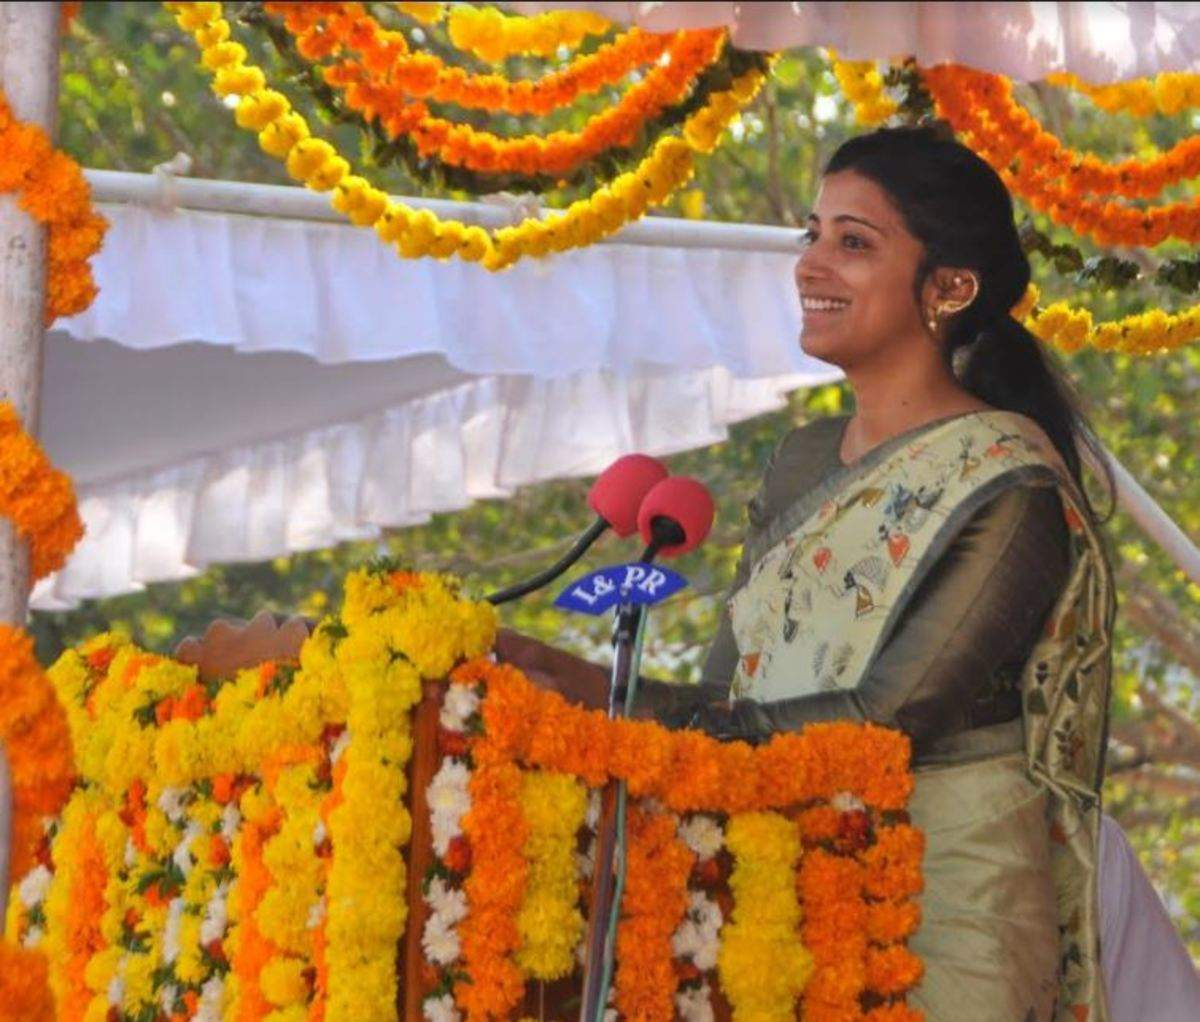 Collector Amrapali Kata: 'It's so funny,' quips Collector